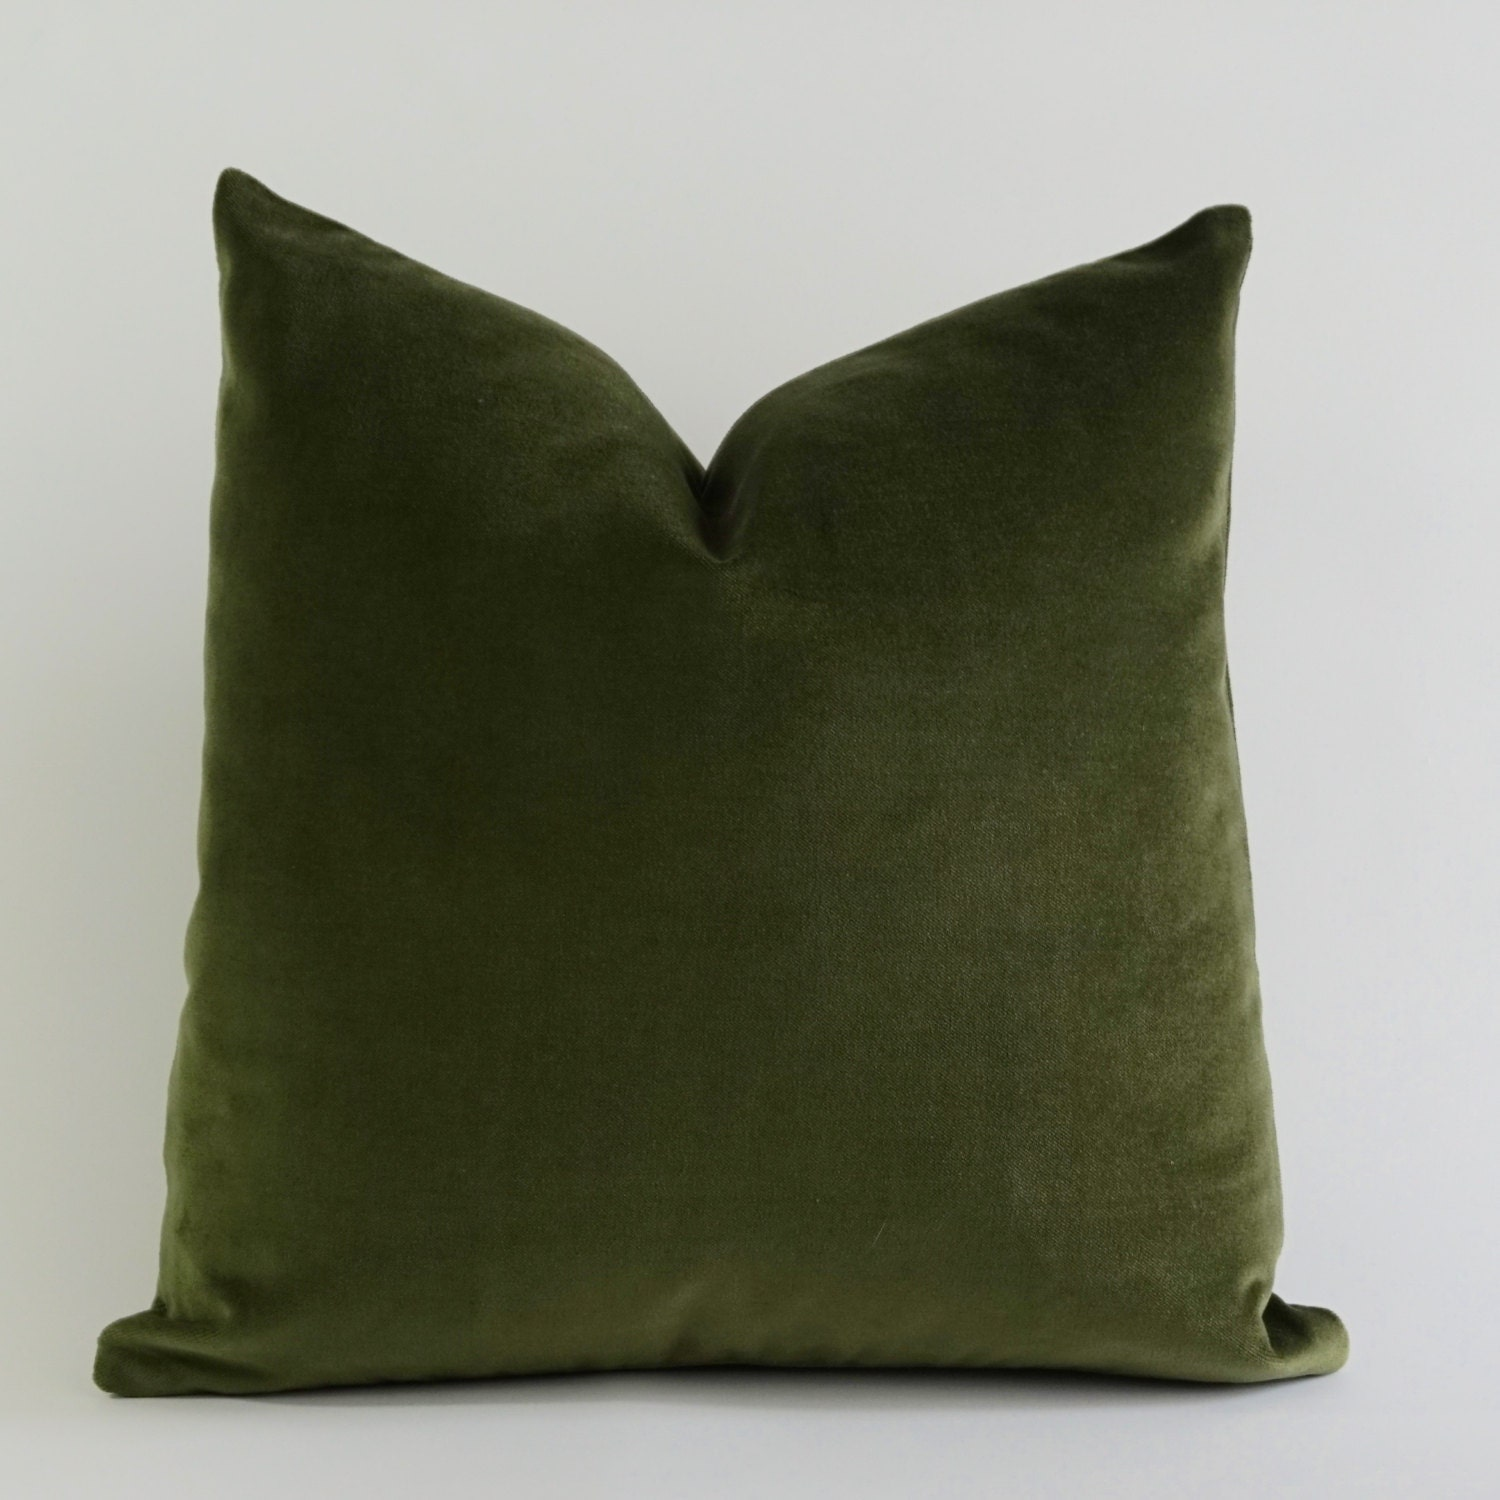 Olive Green Cotton Velvet Pillow Cover Decorative Accent